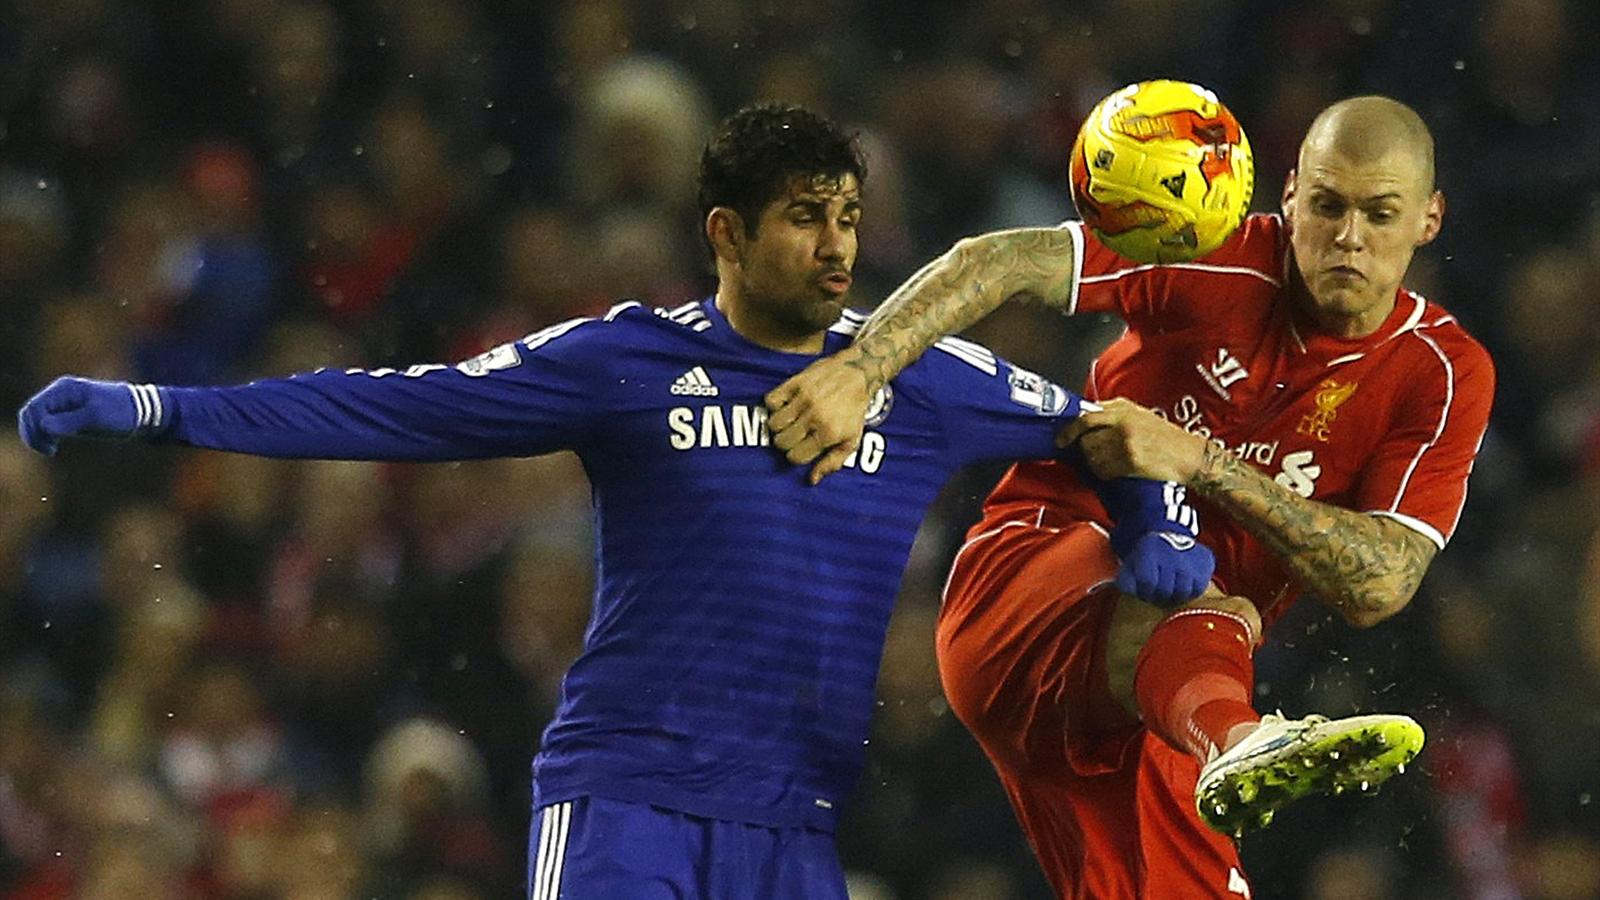 Liverpool's Martin Skrtel challenges Chelsea's Diego Costa (L) during their English League Cup semi-final first leg soccer match at Anfield in Liverpool, northern England January 20, 2015 (Reuters)